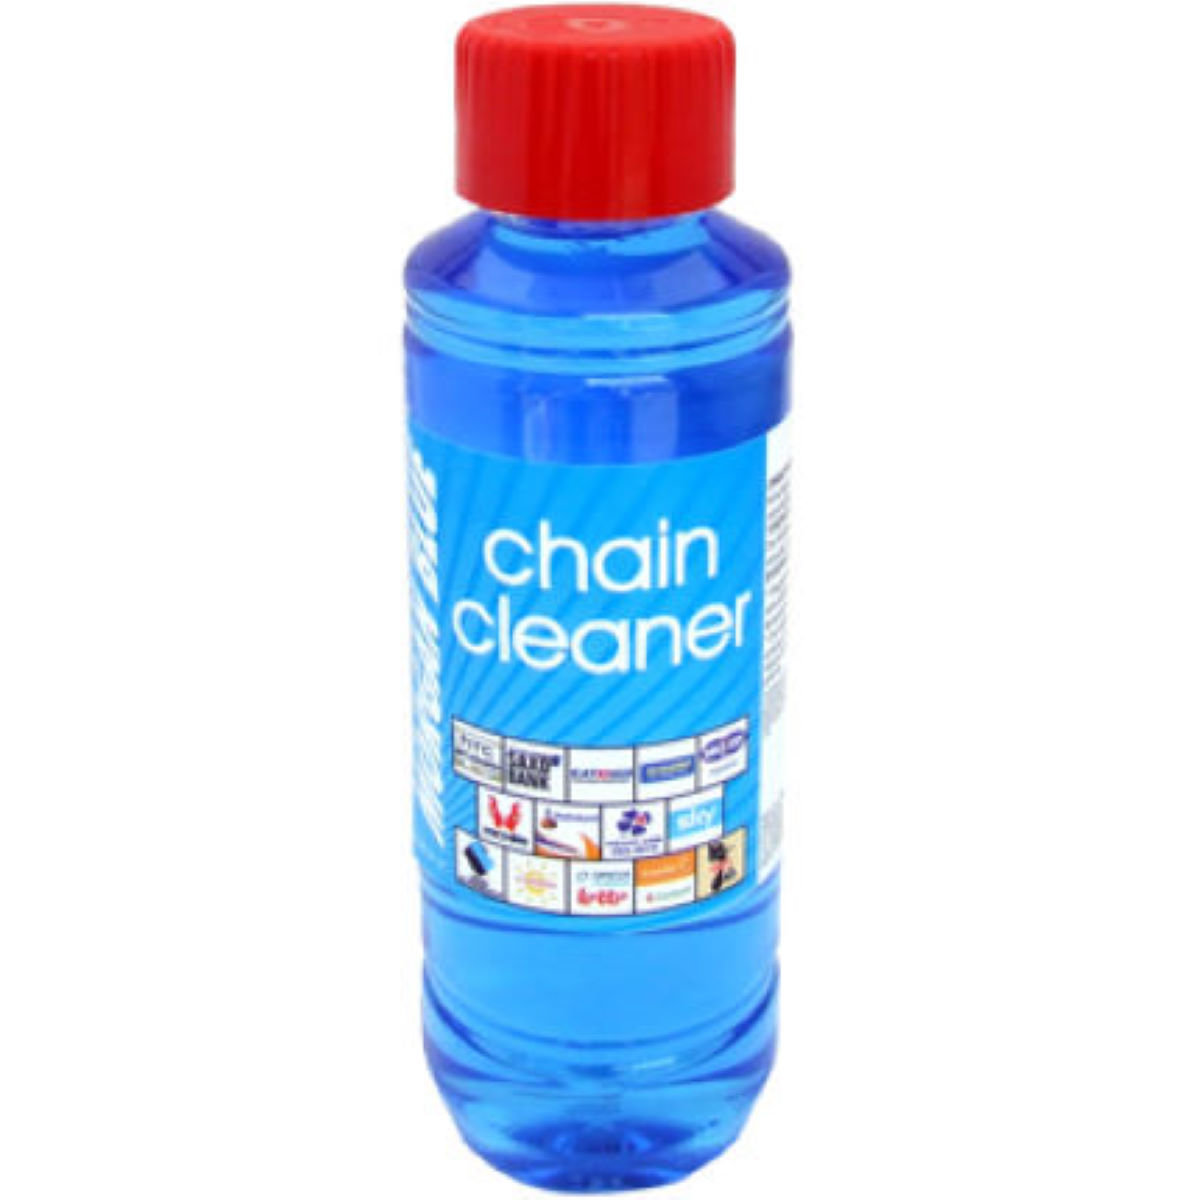 Morgan Blue Morgan Blue Chain Cleaner - 250ml Bottle   Cleaning Products